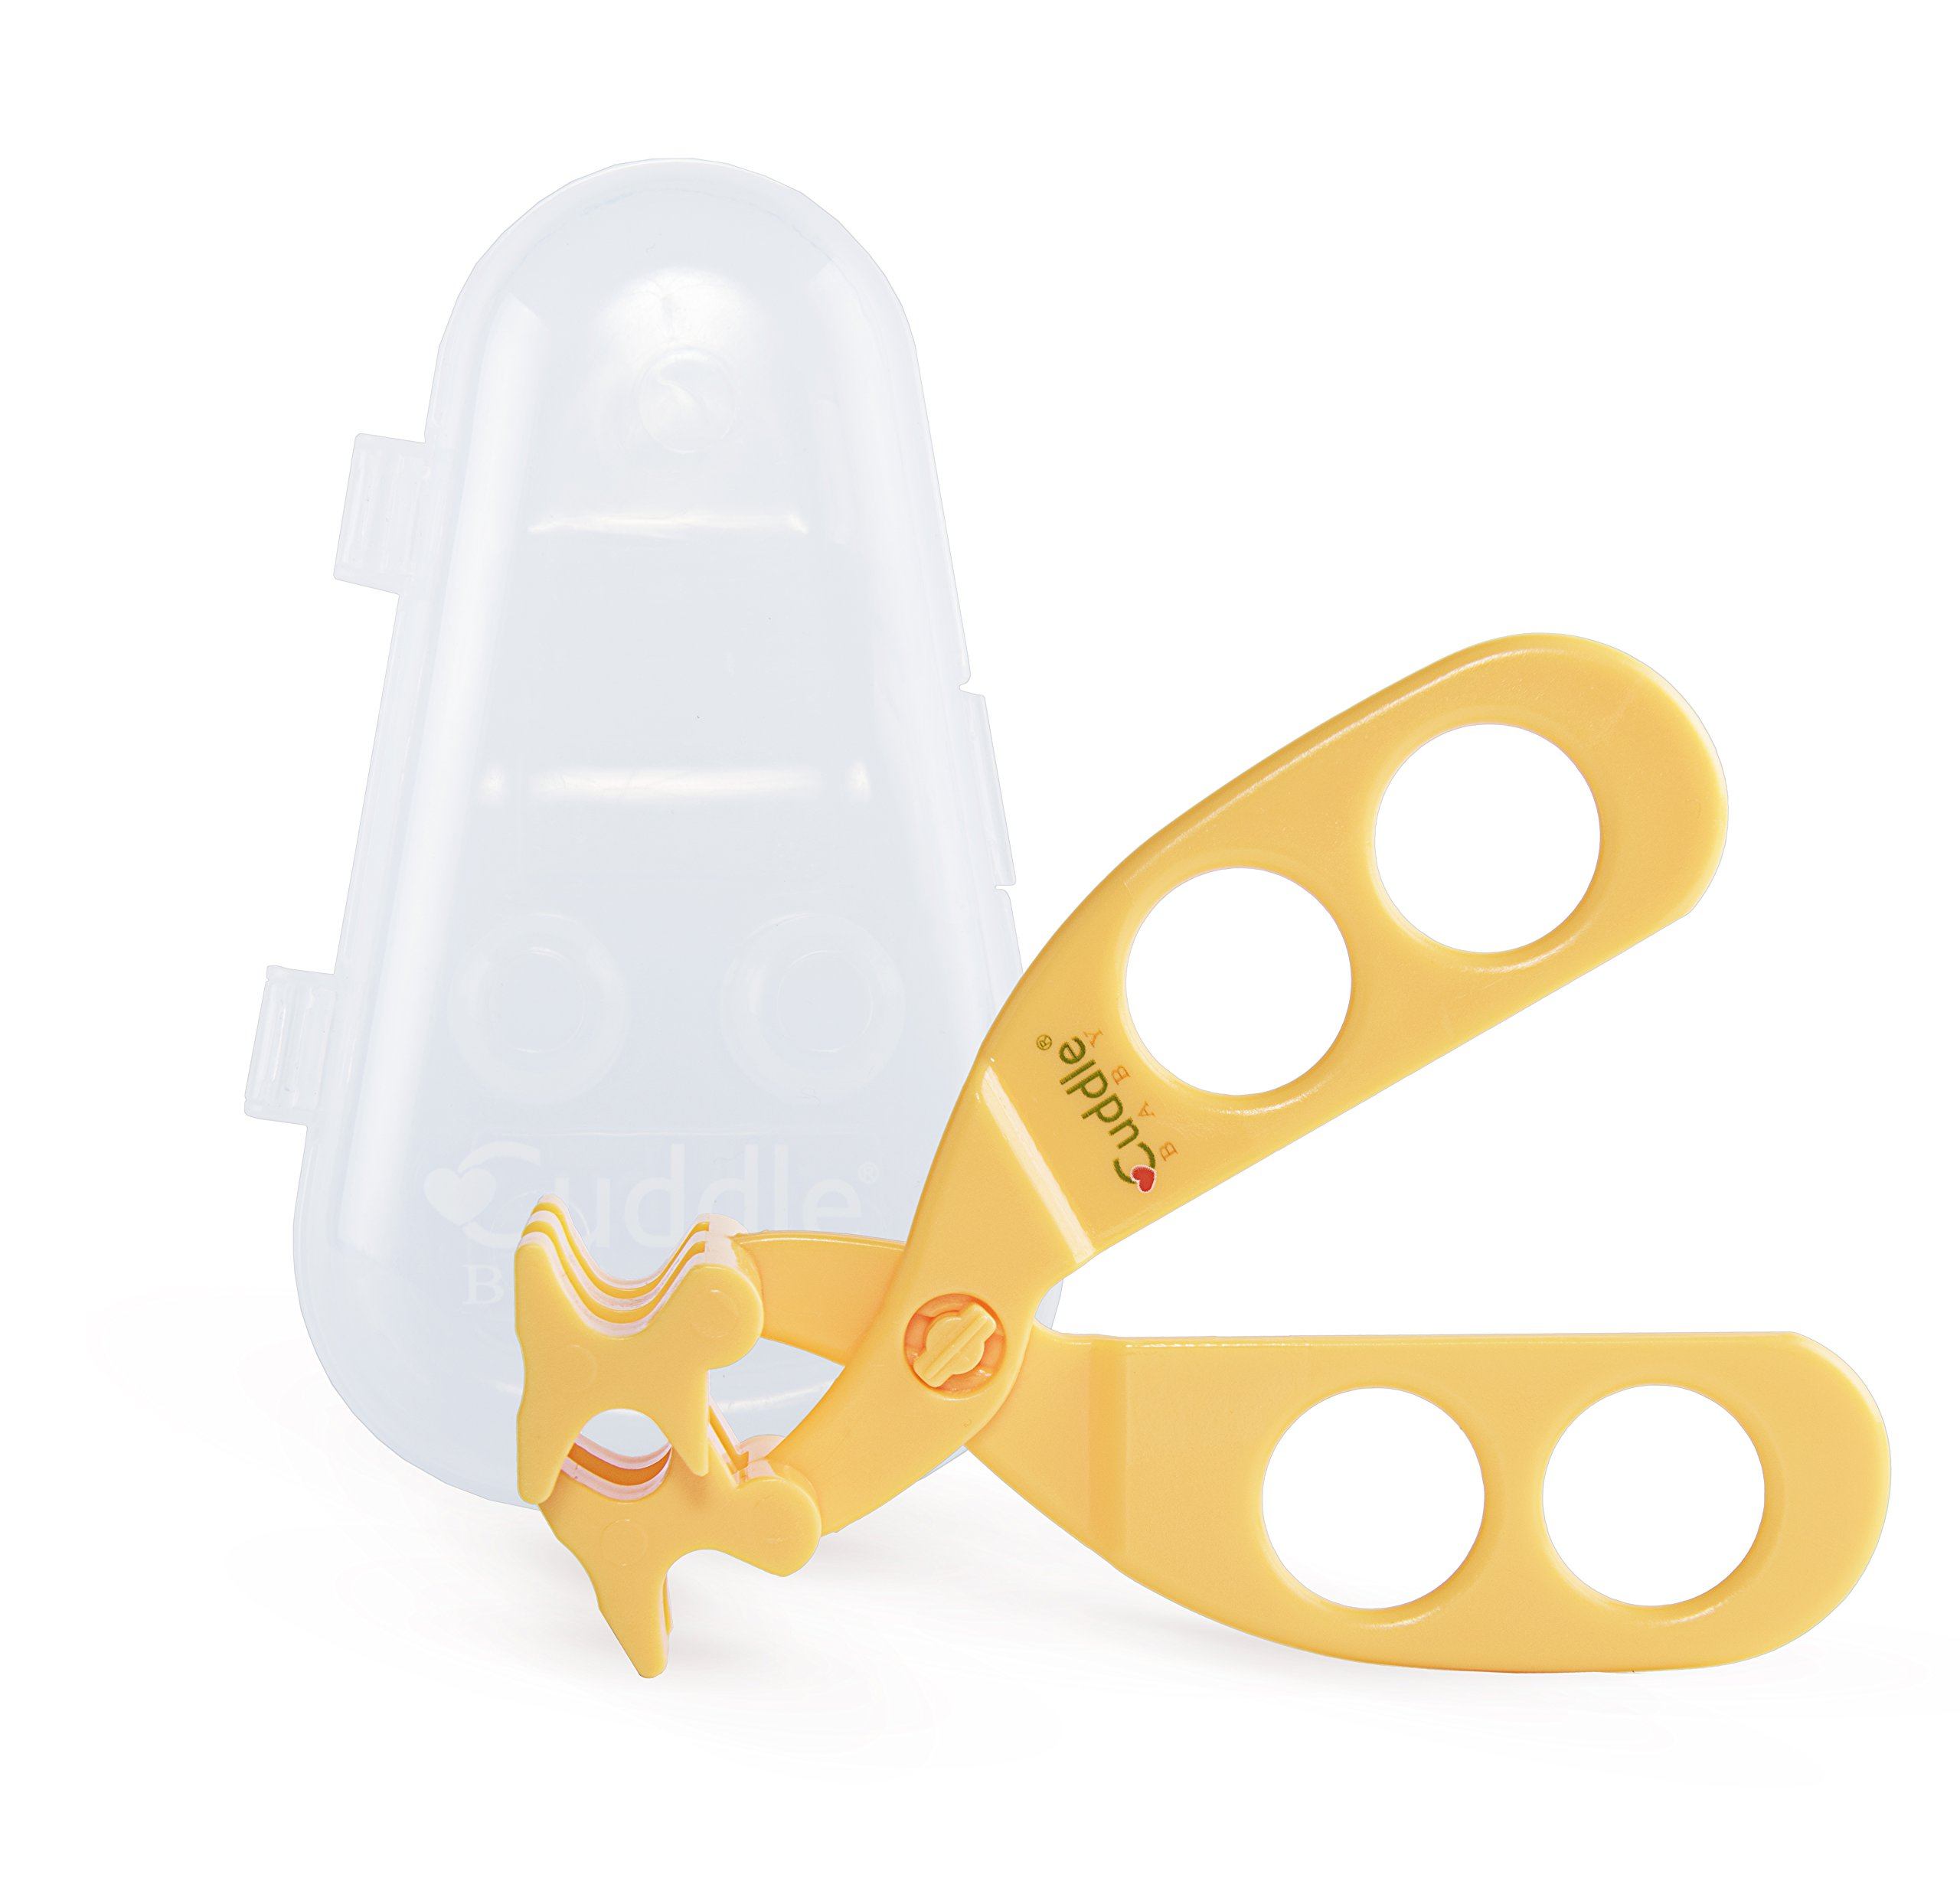 Cuddle Baby Portable Food Scissor Cutter Masher Chopper, Home and Kitchen Food Slicer Shears (Comes with Travel Storage Case) – Sunny Yellow